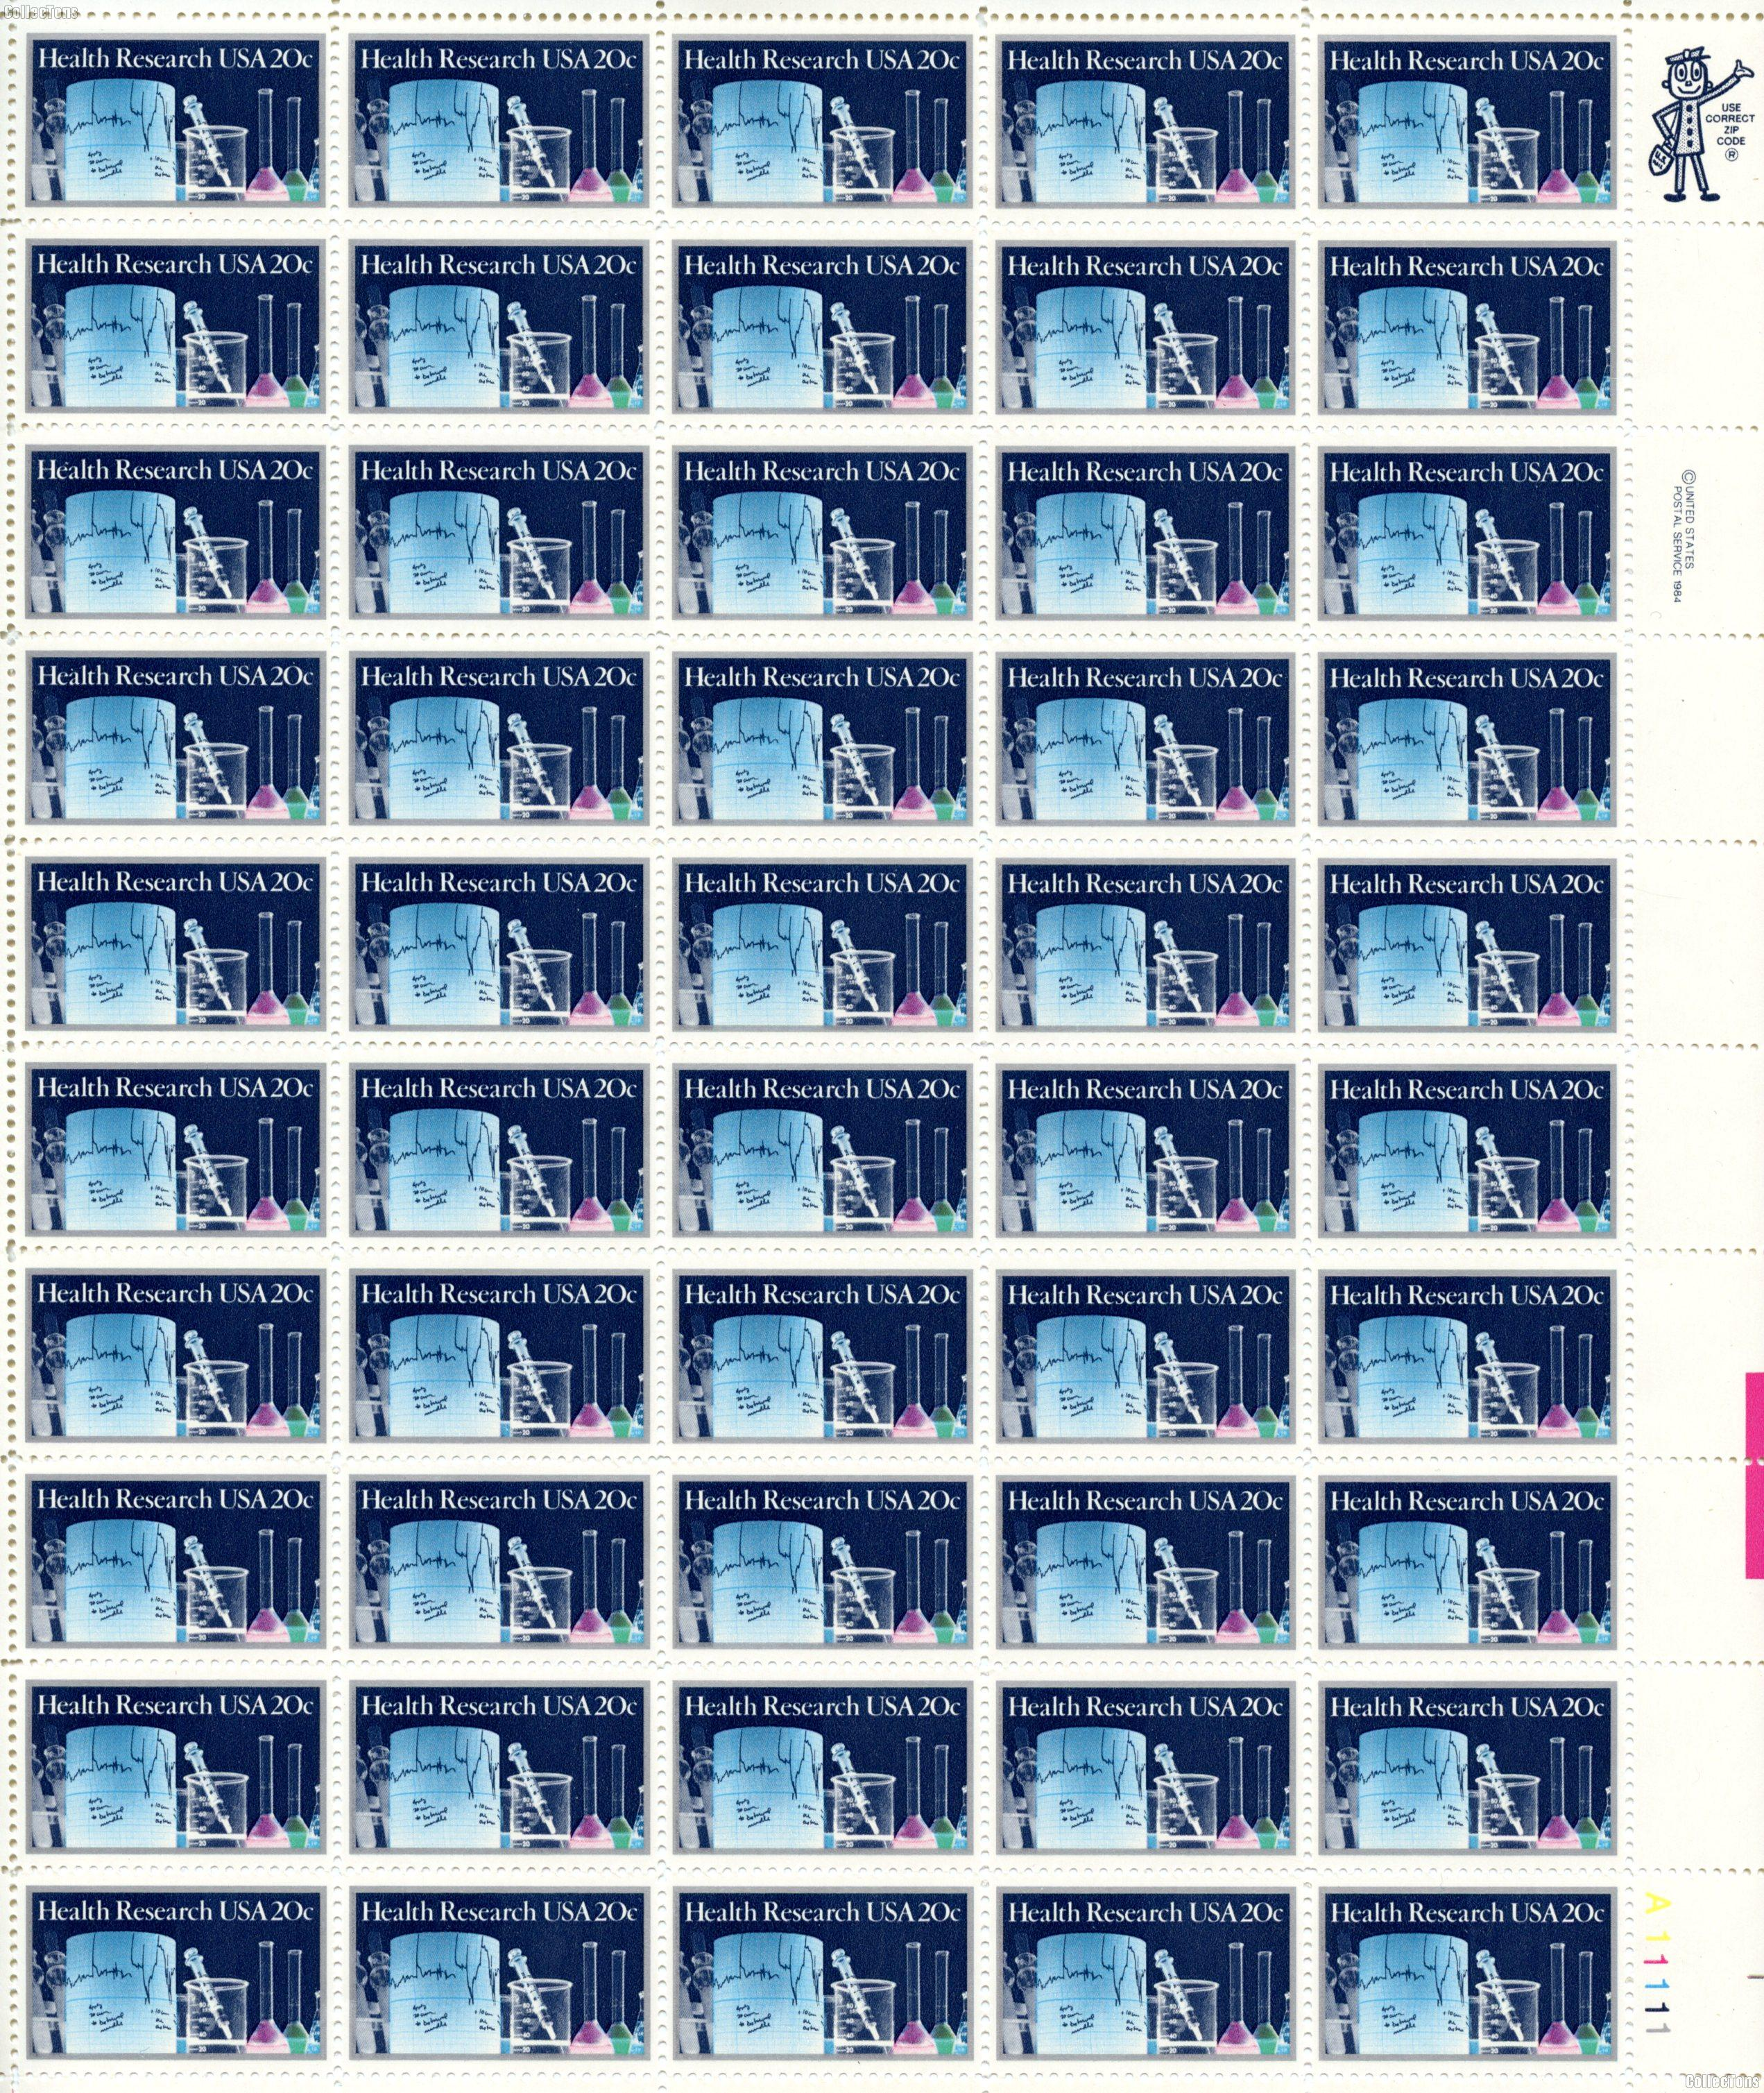 1984 Health Research 20 Cent US Postage Stamp MNH Sheet of 50 Scott #2087